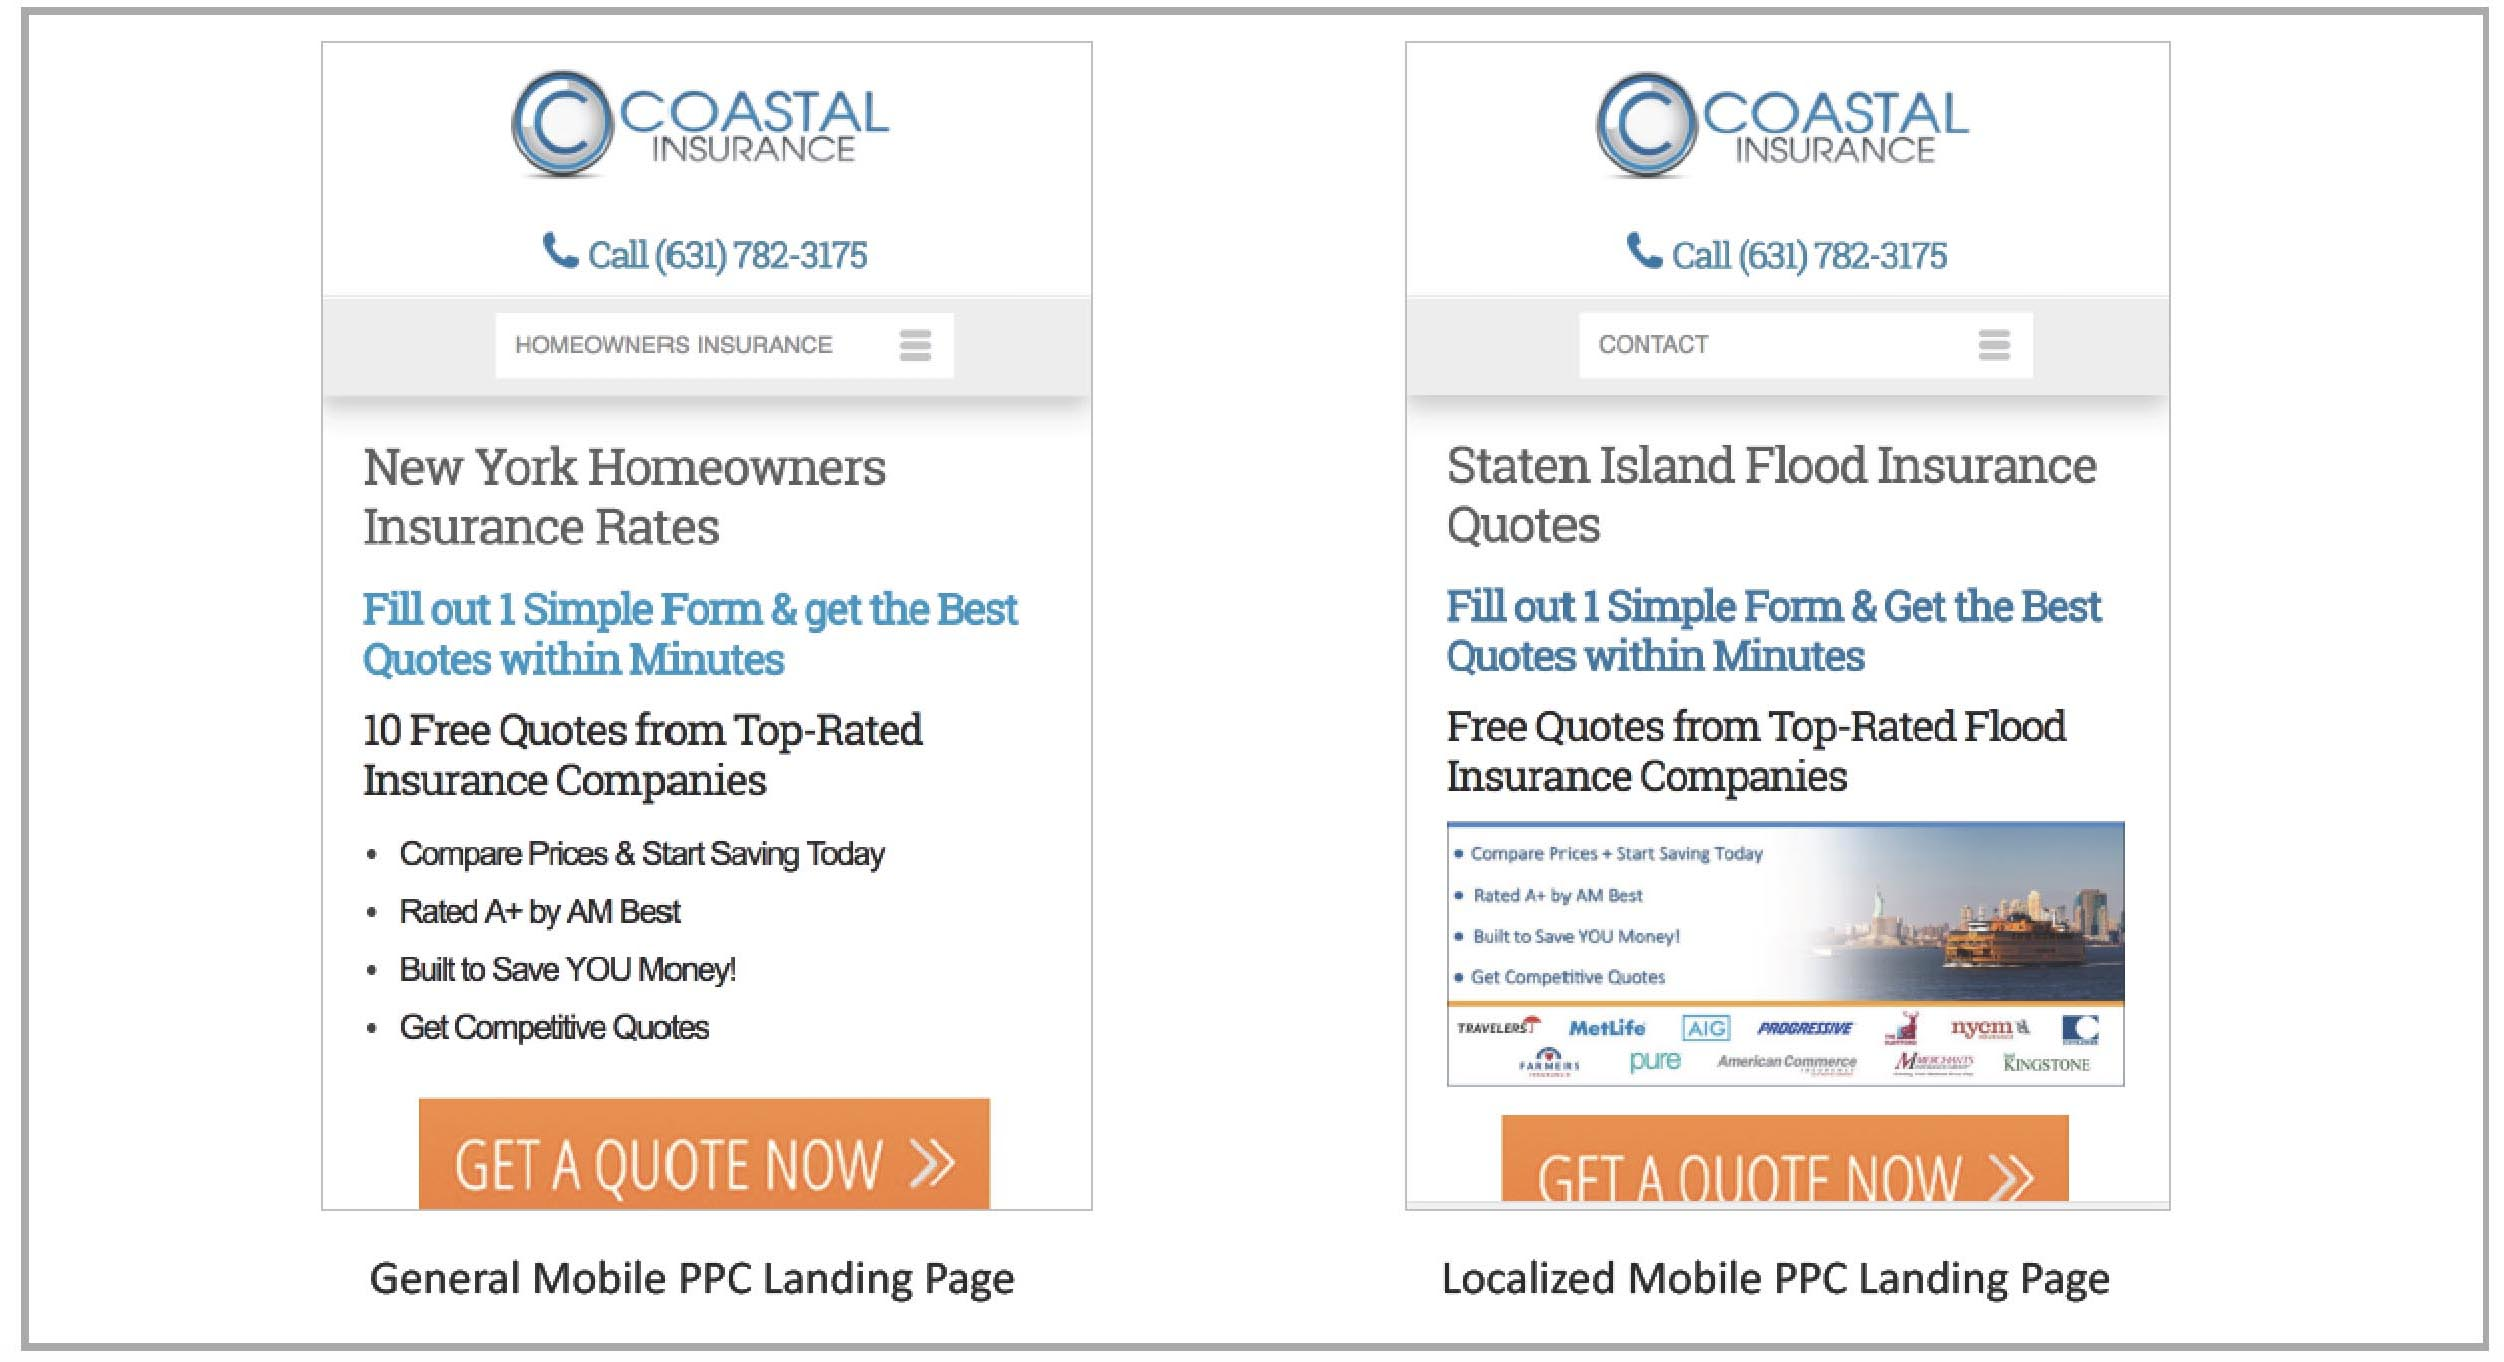 Coastal-General-Mobile-PPC-Landing-Page-and-Localized-Mobile-PPC-Landing-Page